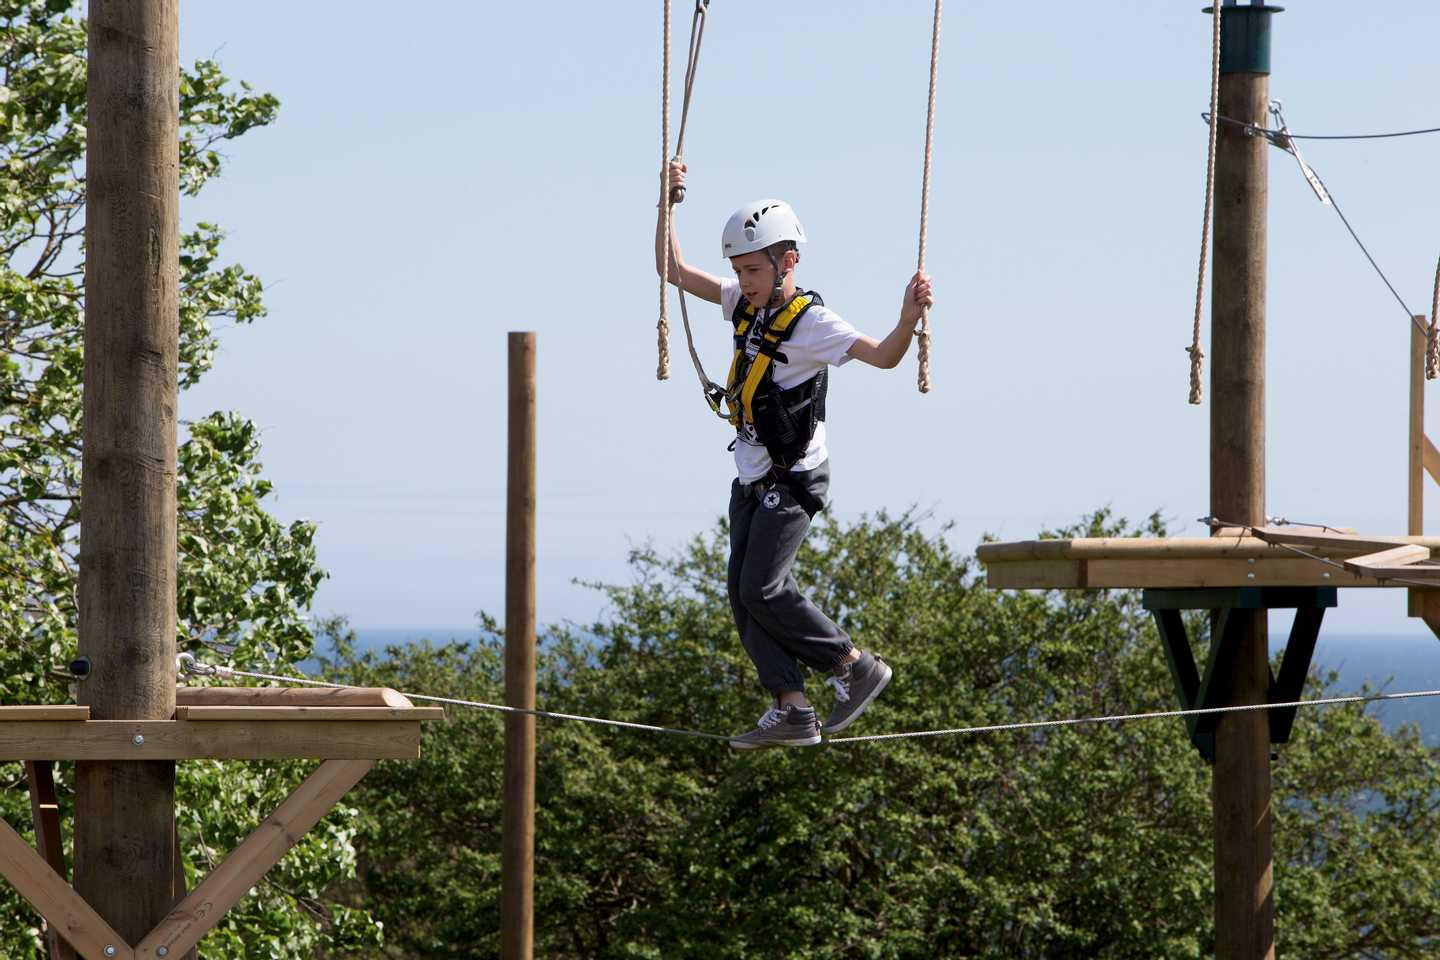 Child tackling the Aerial Adventure course